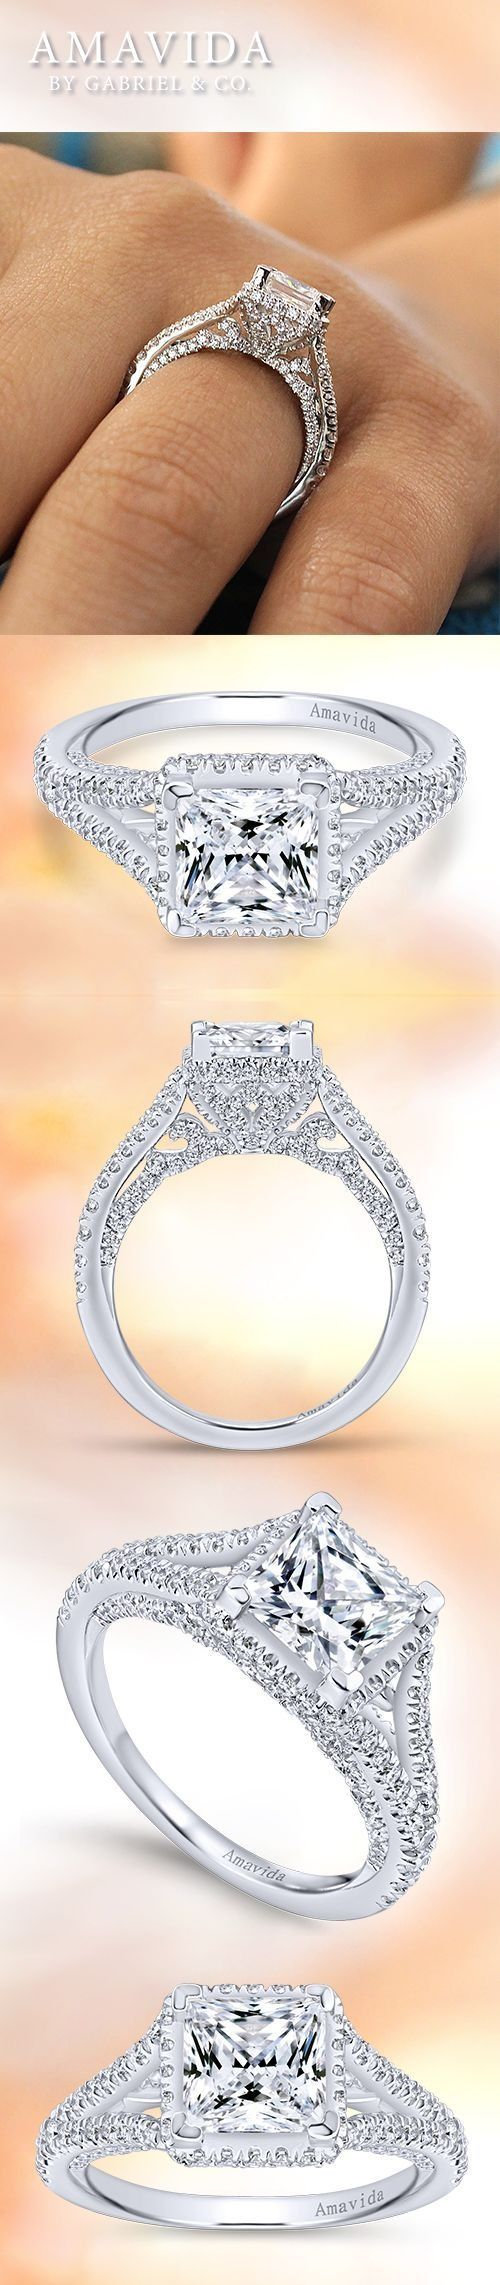 Gabriel NY - Preferred Fine Jewelry and Bridal Brand. 18k White Gold Princess Cut Halo Engagement Ring. Bright pave diamonds line the gallery and split shank band of this alluring engagement ring. An unconventional halo lines the perimeter of the princess cut center stone. Find your nearest retailer-> https://www.gabrielny.com/storelocator